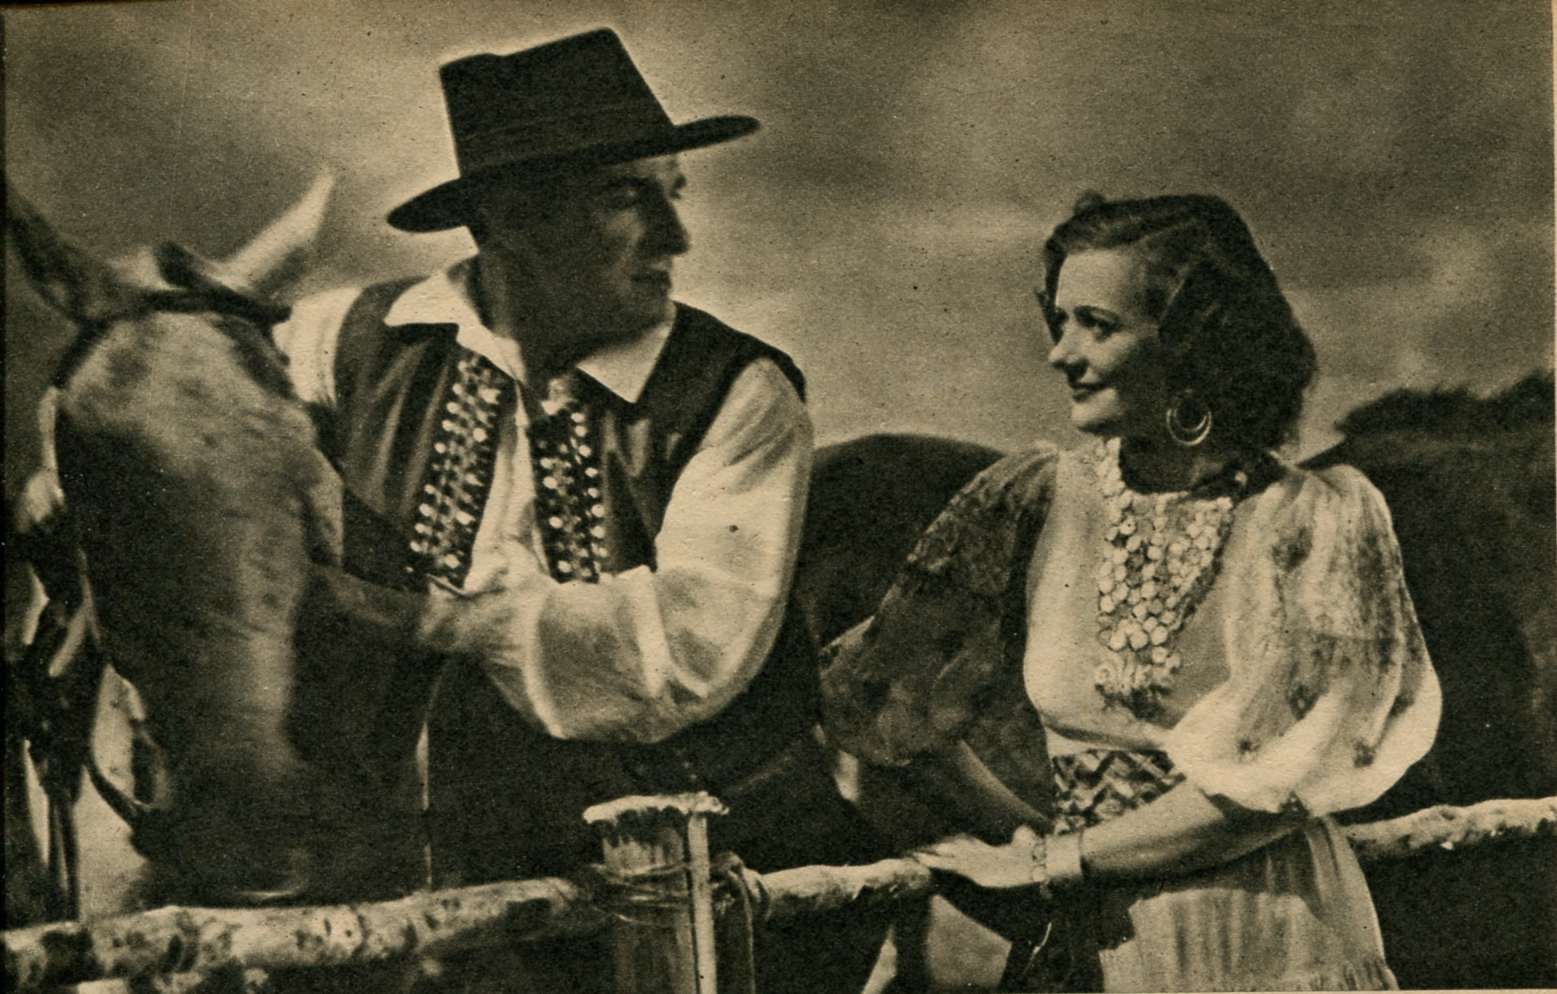 Zita Fiore and Jean Galland in Le Danube bleu (1940)